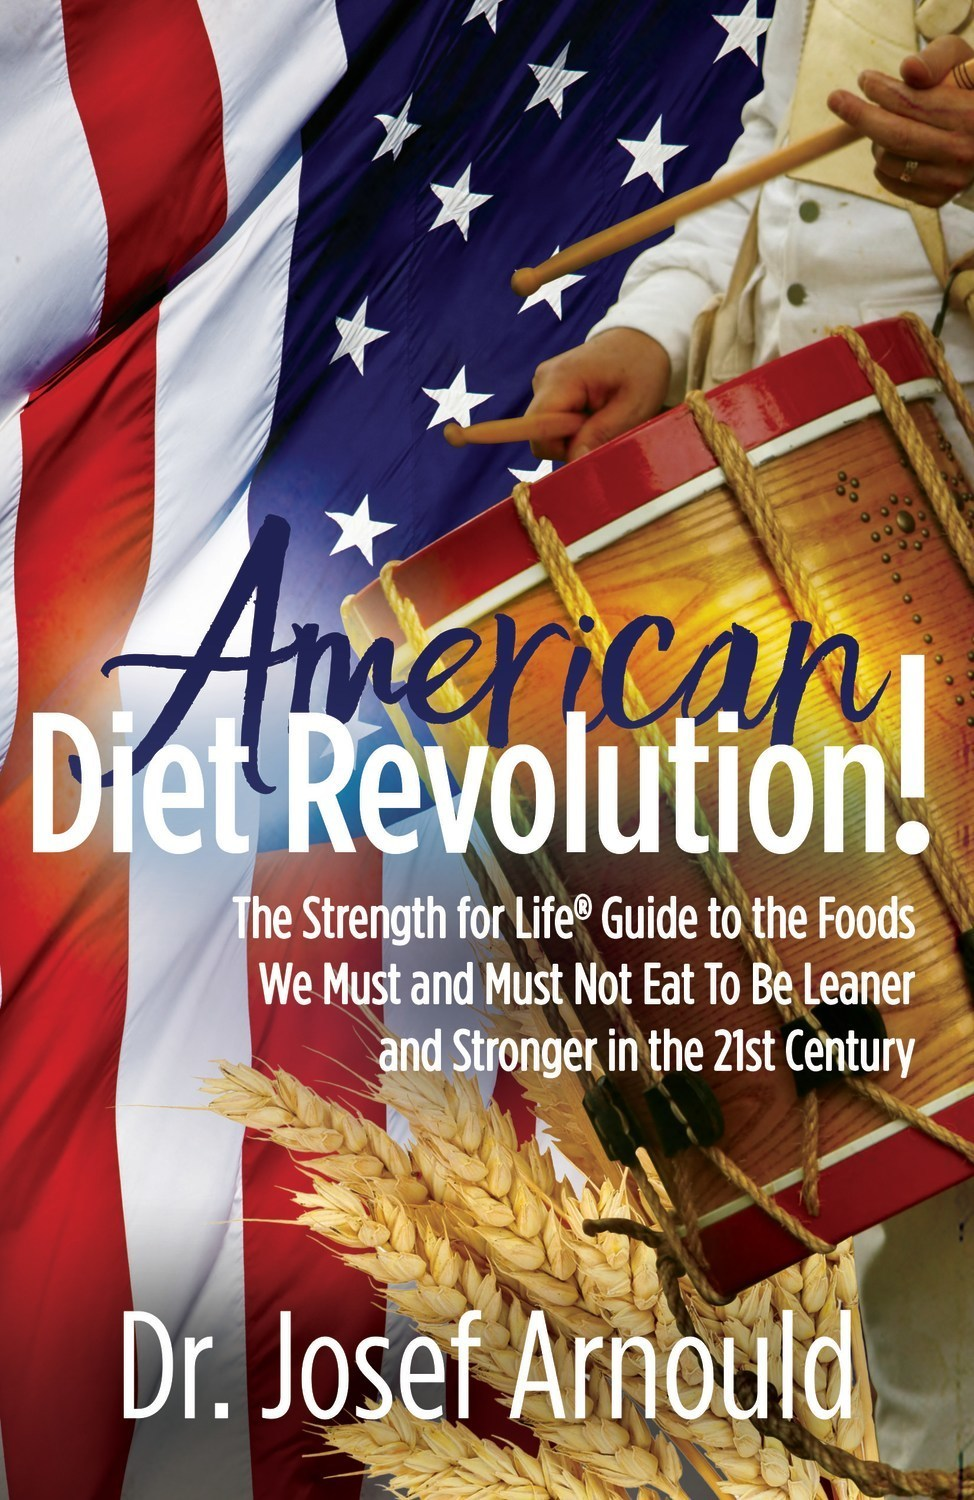 American Diet Revolution!: The Strength for Life Guide to the Foods We Must and Must Not Eat To Be Leaner and Stronger in the 21st Century, by Dr. Josef Arnould